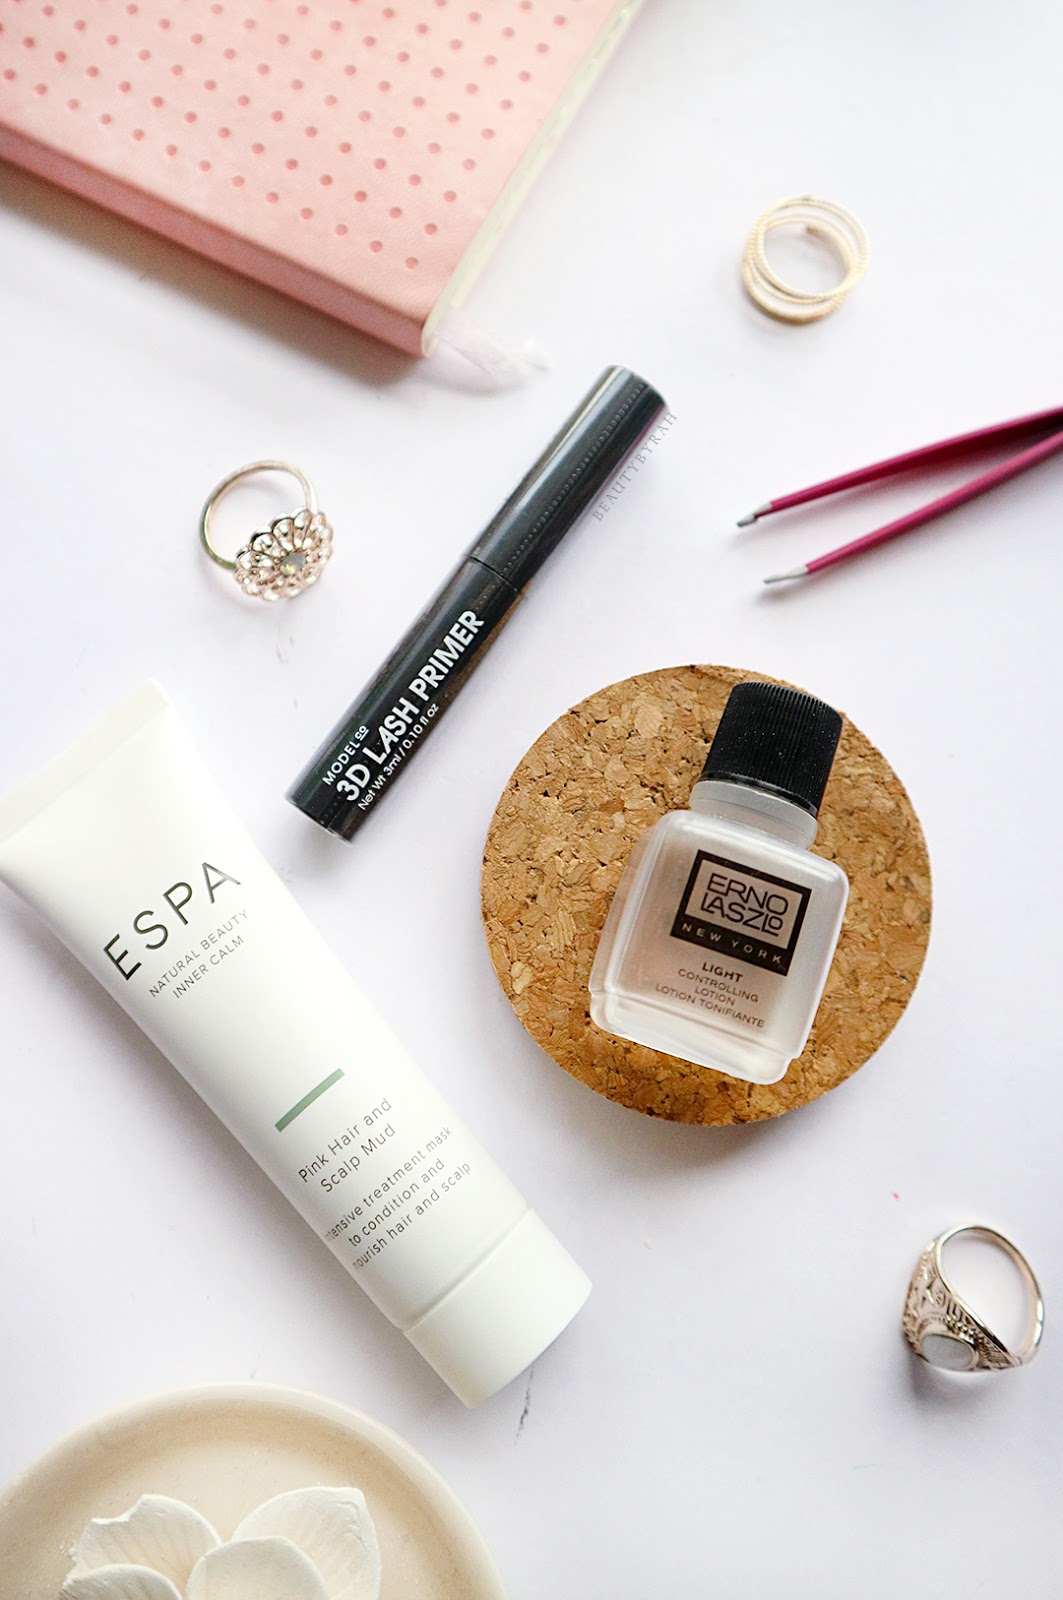 ESPA Pink Hair and Scalp Mud and Model Co 3D Lash Primer Review